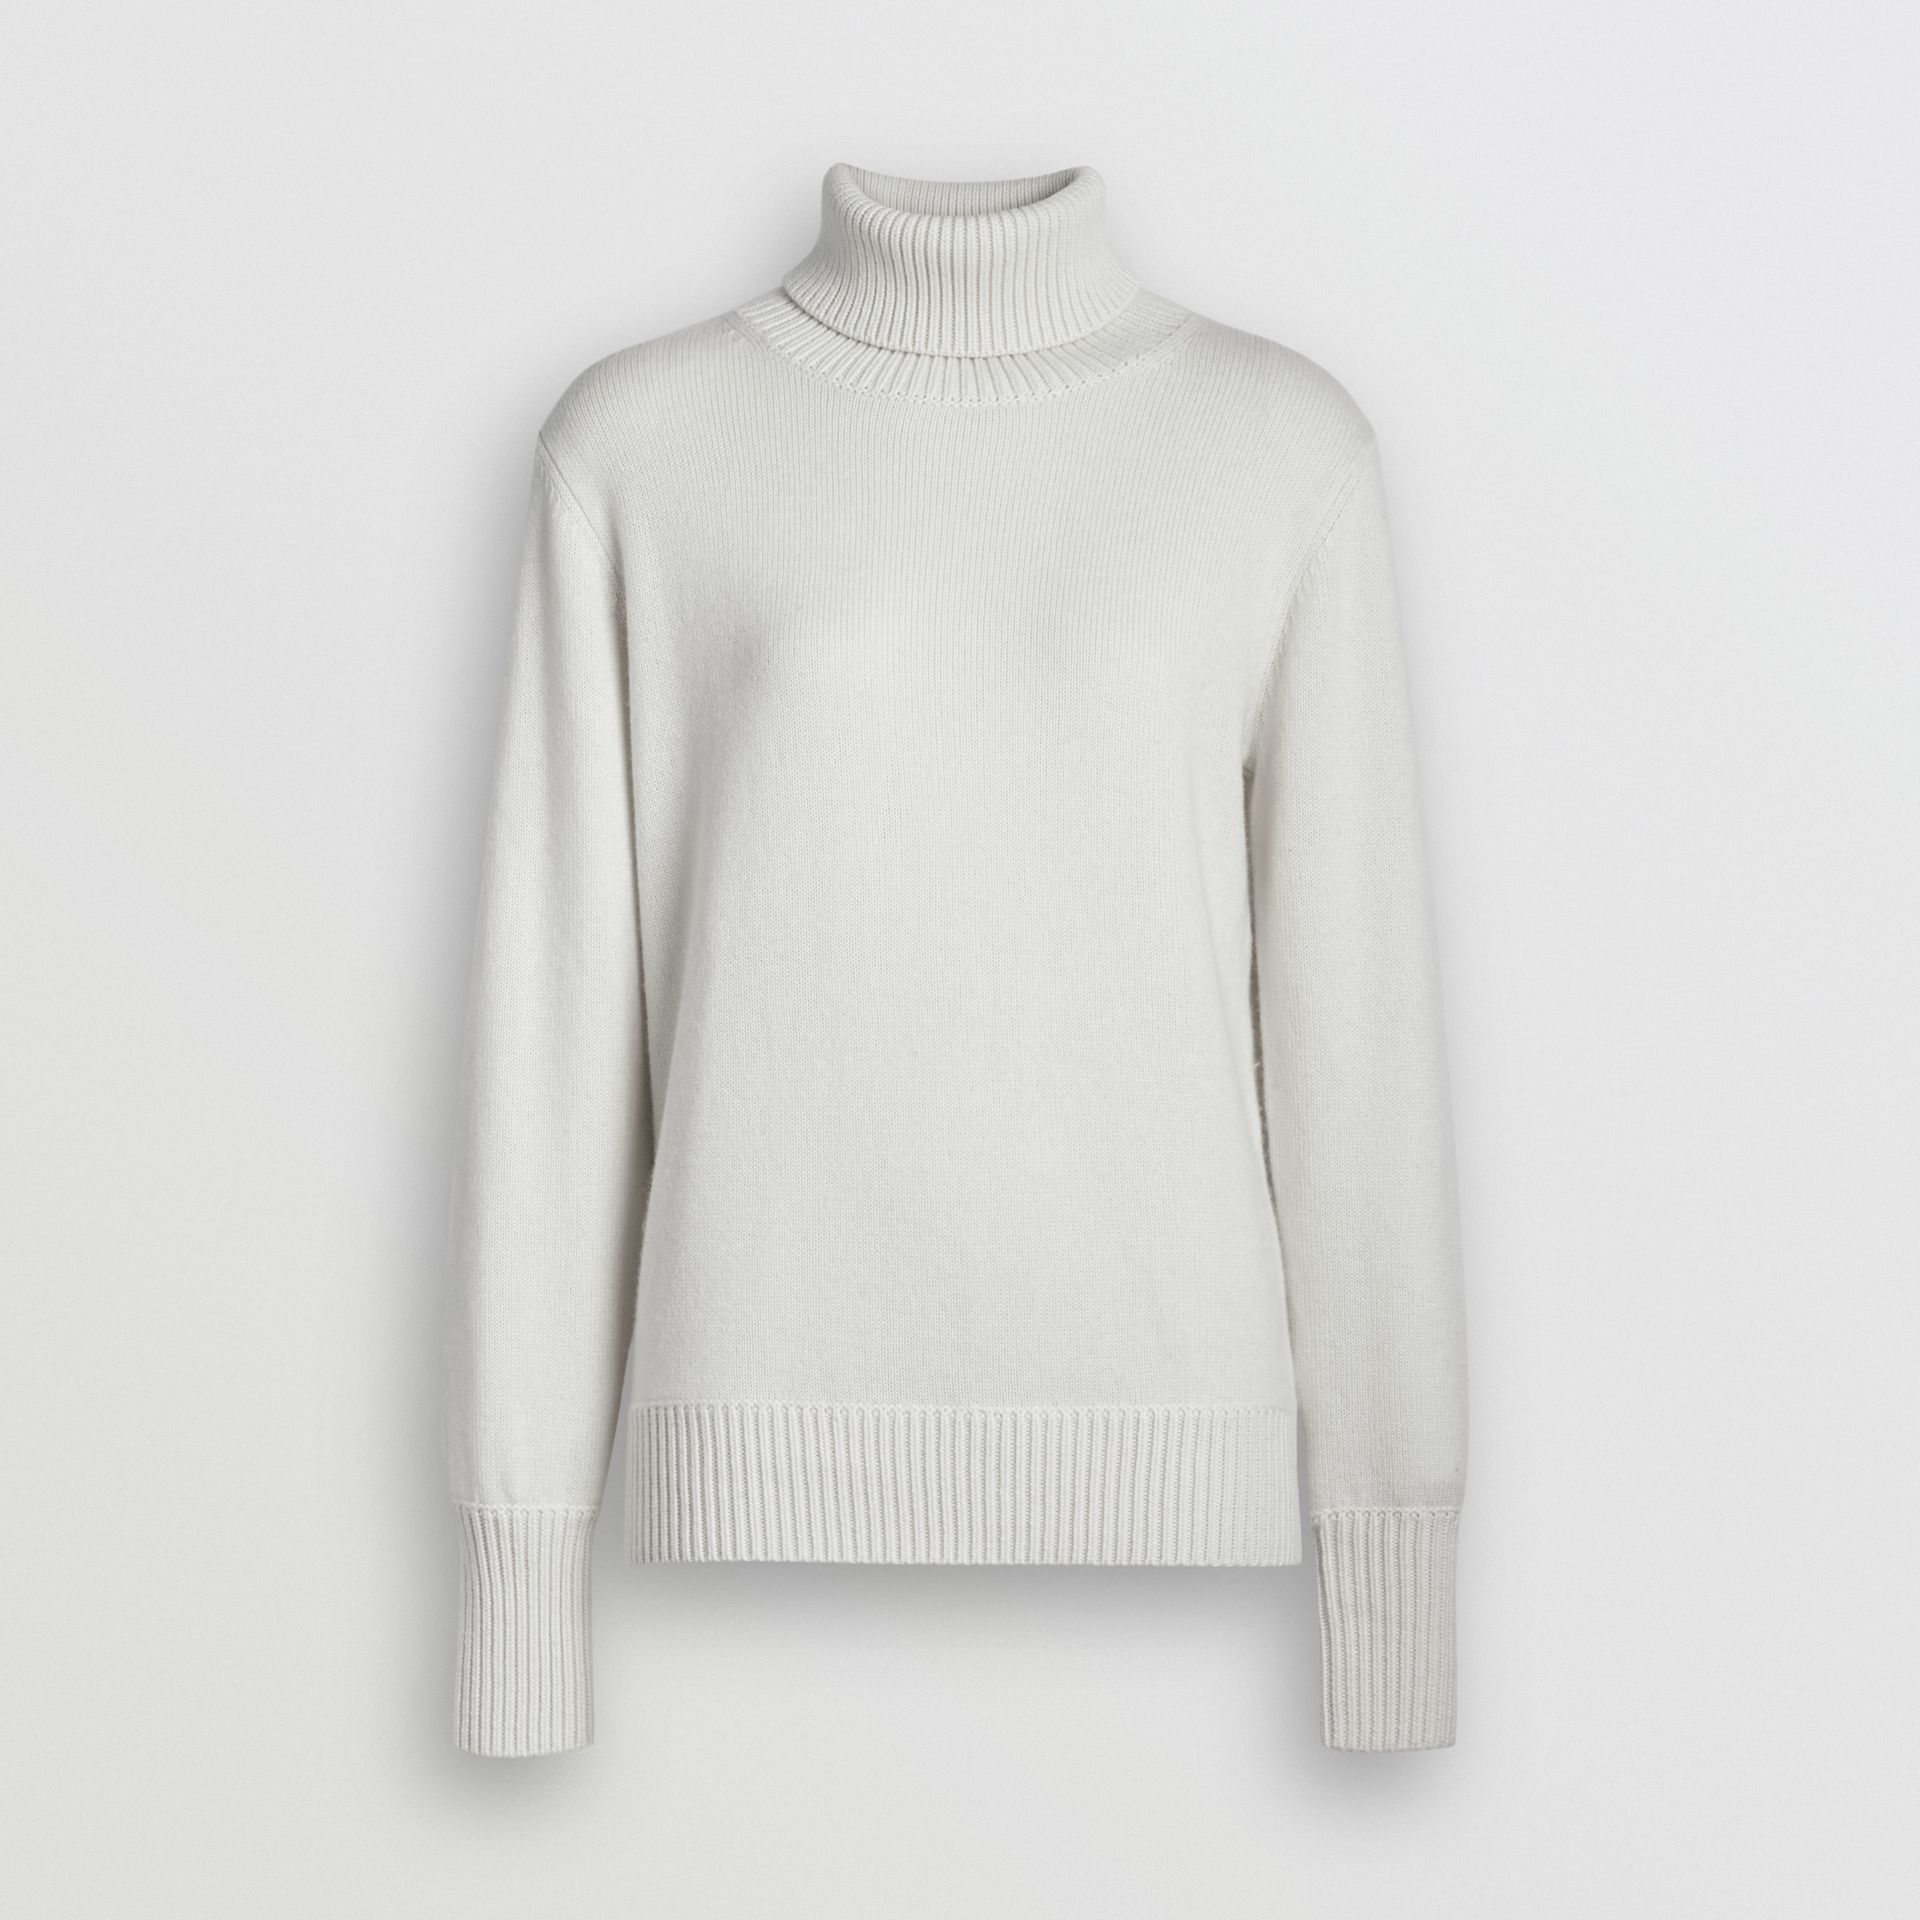 Embroidered Crest Cashmere Roll-neck Sweater in White - Women | Burberry - gallery image 3